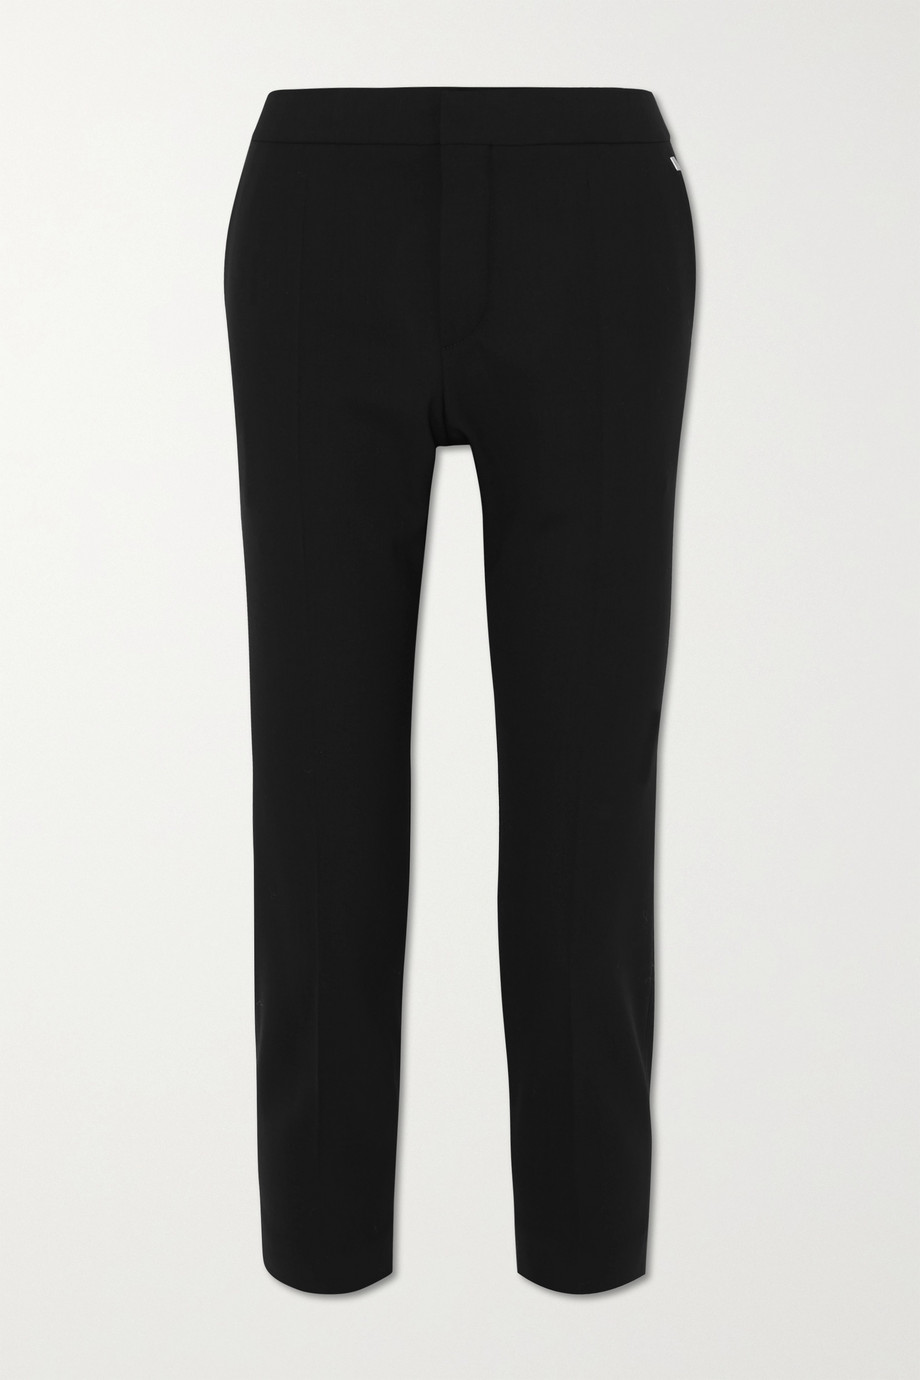 CHLOÉ Cropped stretch-wool straight-leg pants